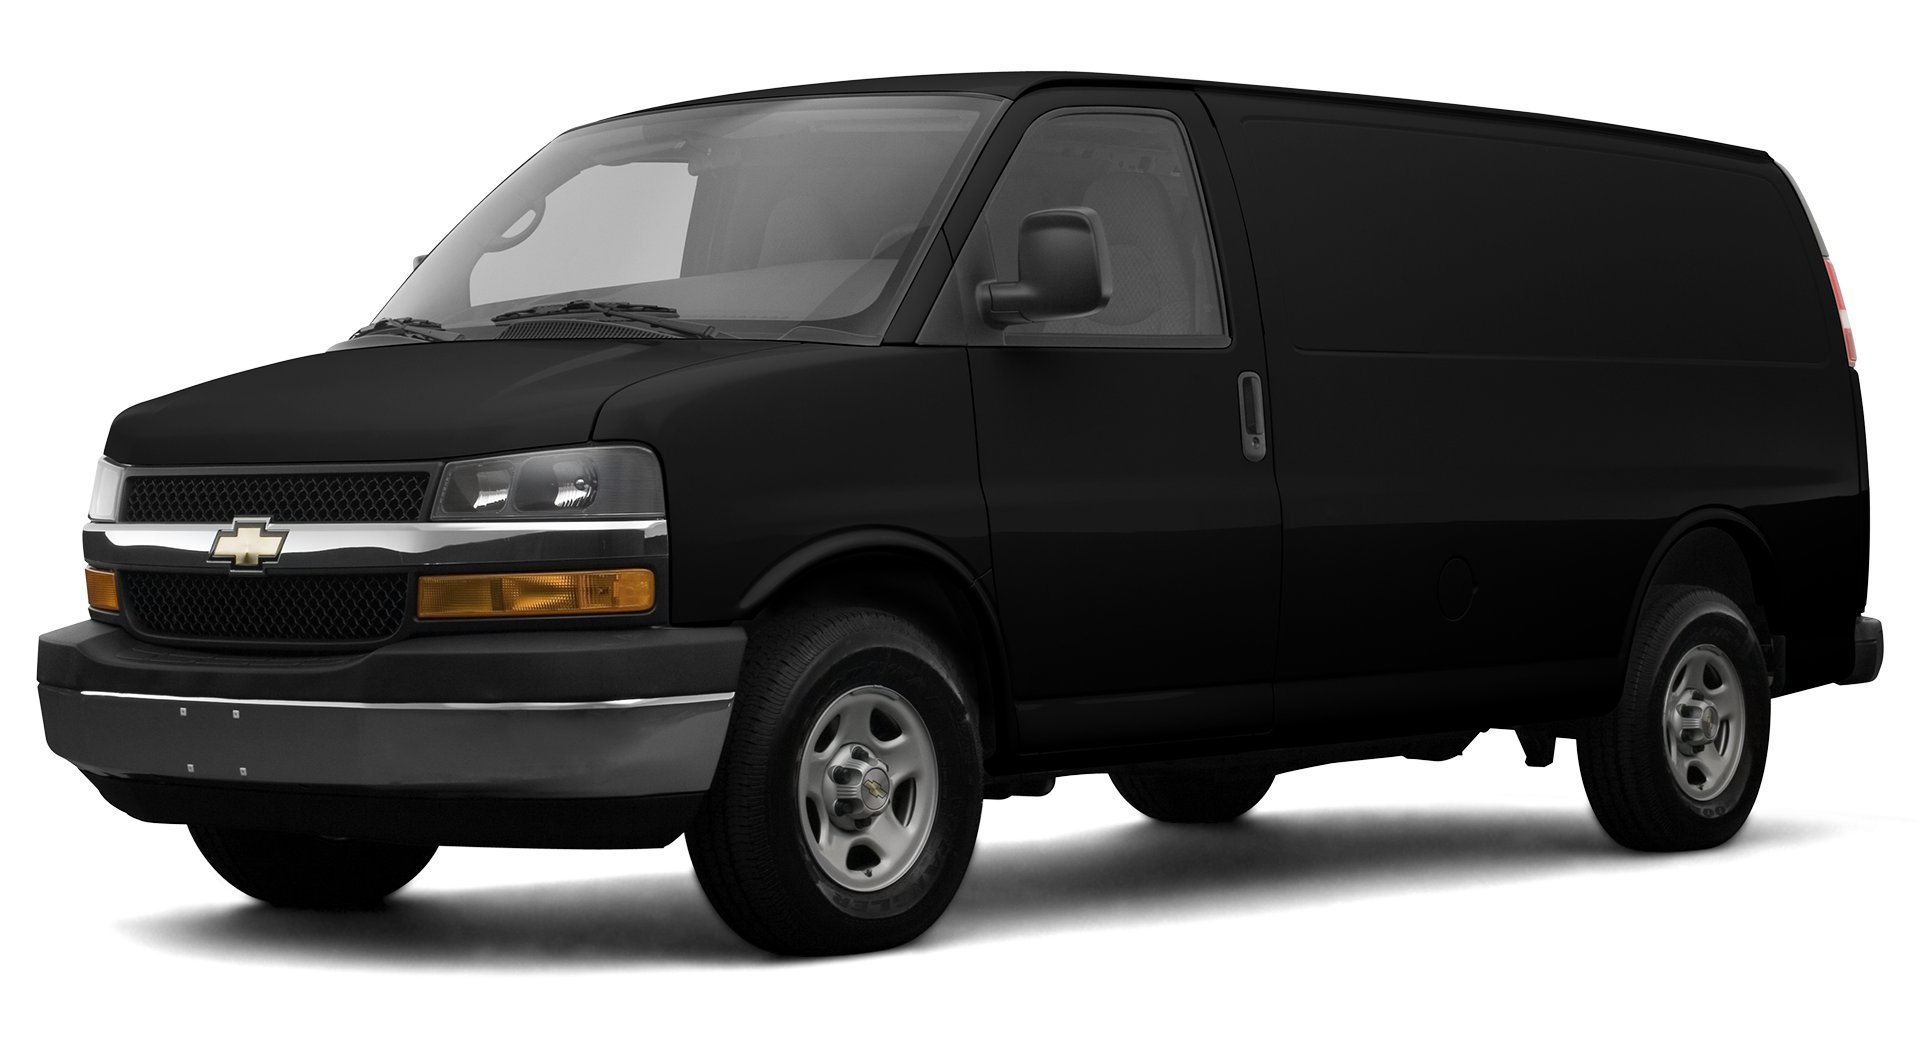 2008 chevrolet express 2500 reviews images. Black Bedroom Furniture Sets. Home Design Ideas